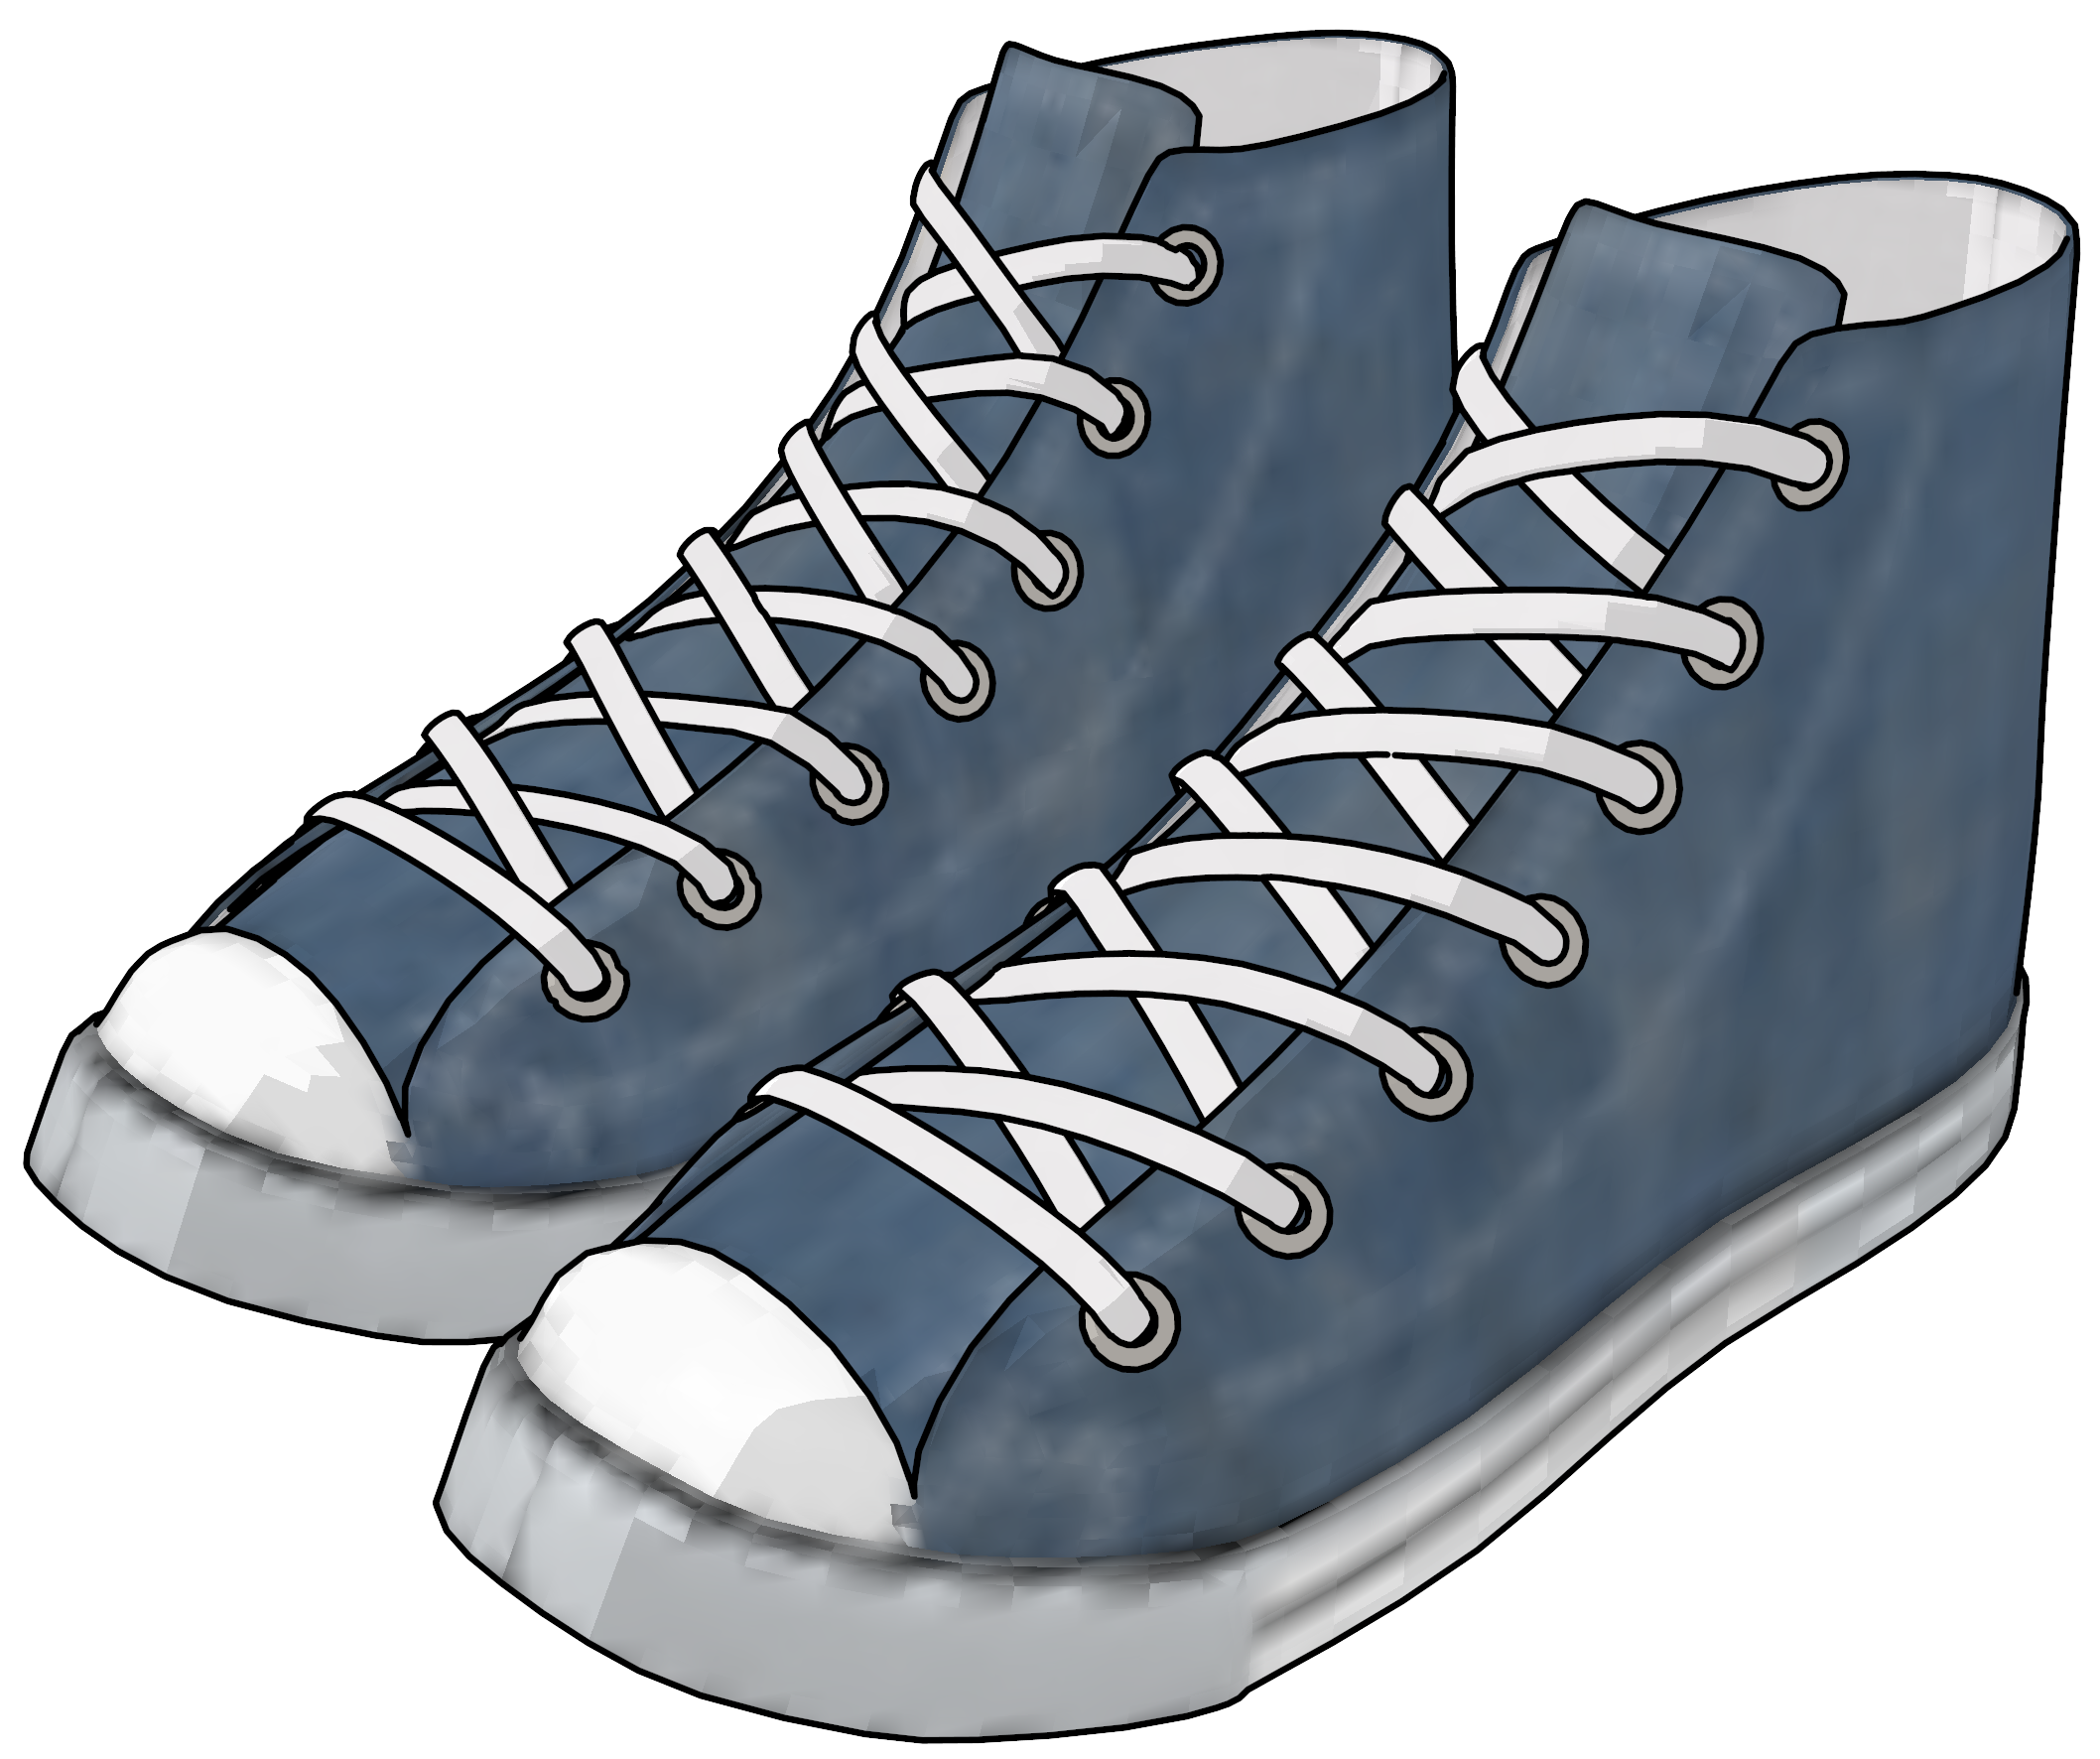 Sneakers Converse Shoes Png Clipart.